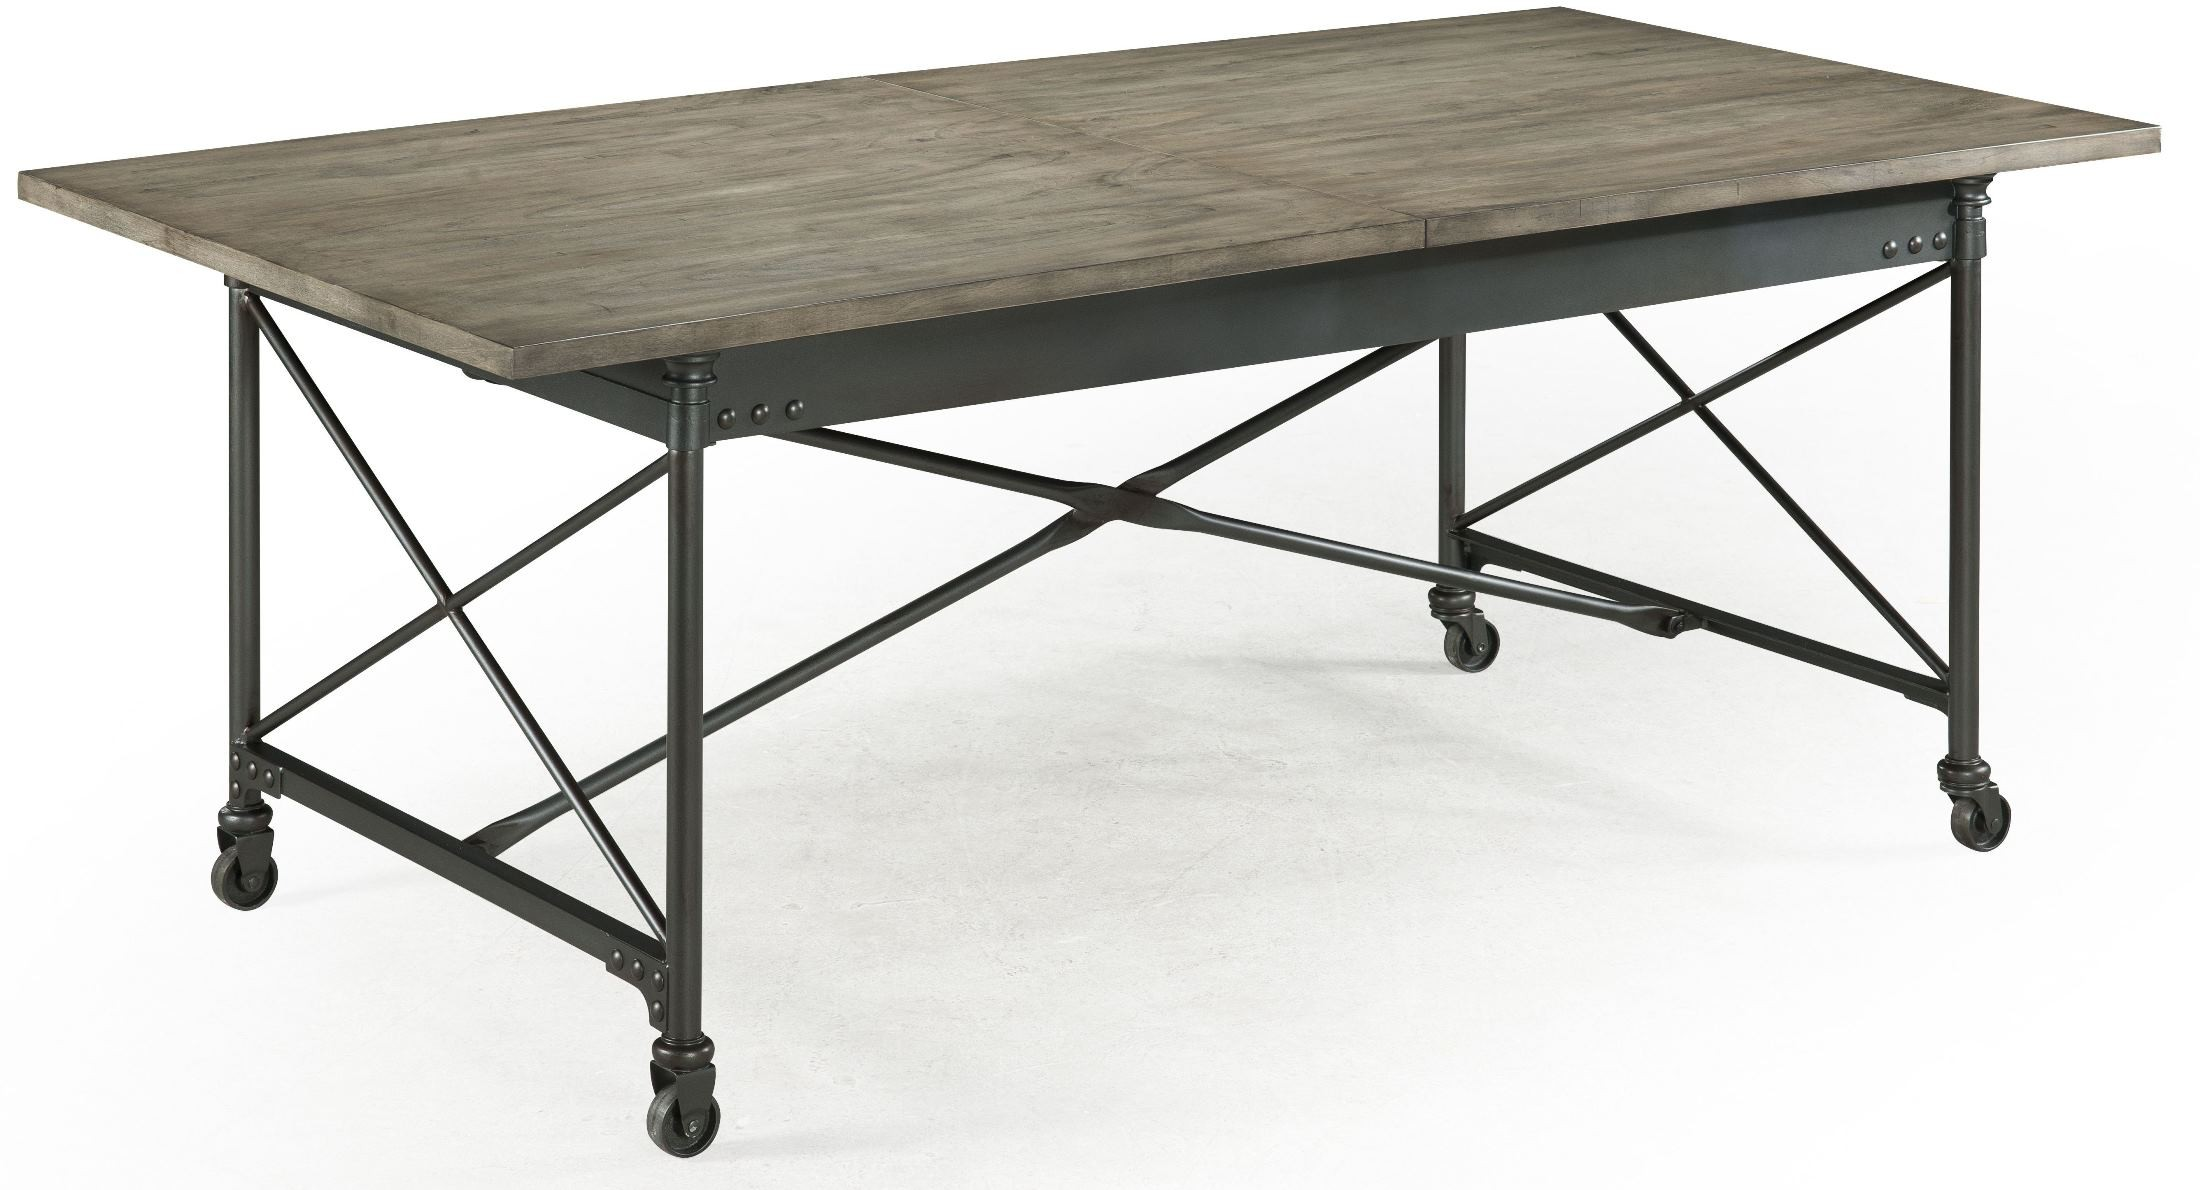 Dining Table Extendable Walton Rectangular Dining Table With Casters From